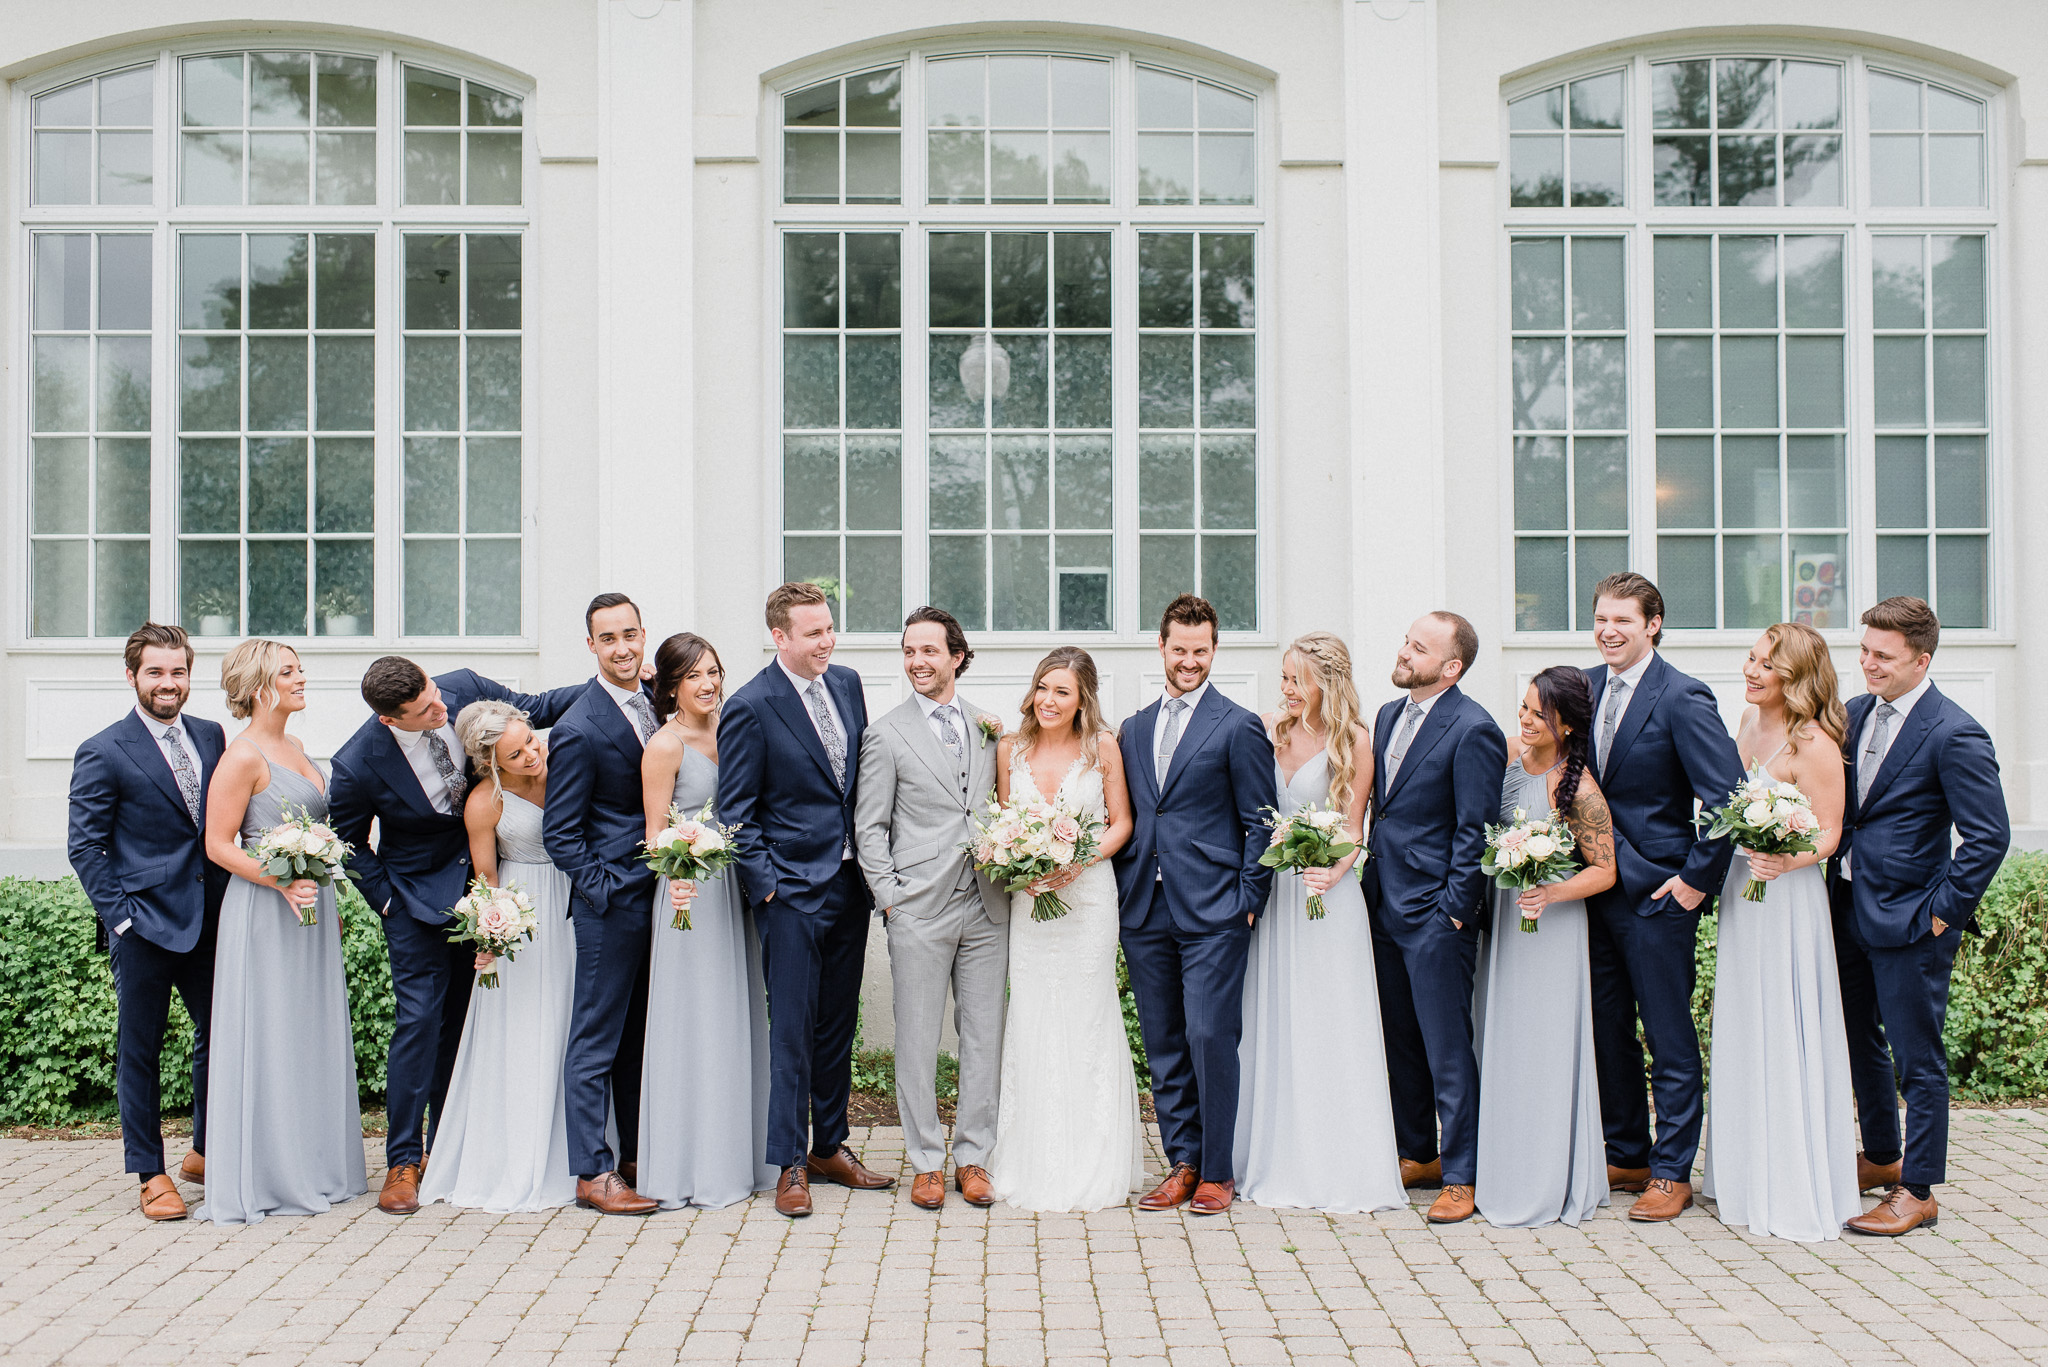 Blue gray bridesmaids dresses by Jenn Kavanagh Photography